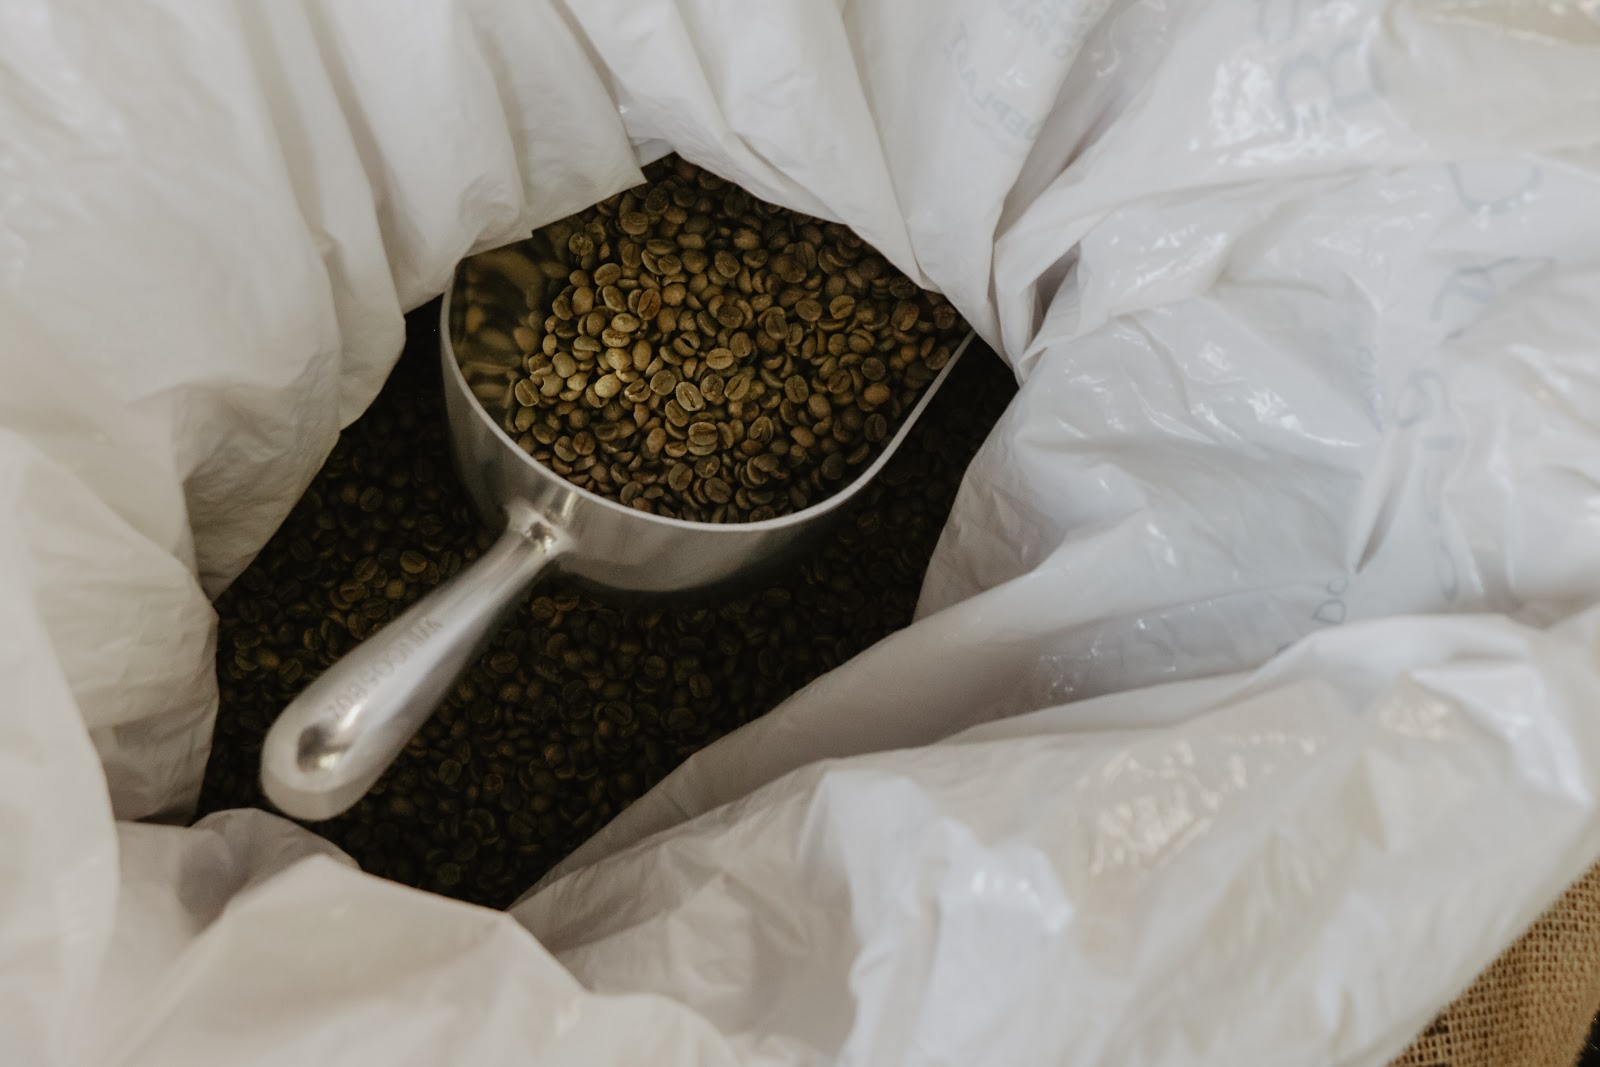 a scoop of green coffee beans in a plastic bag